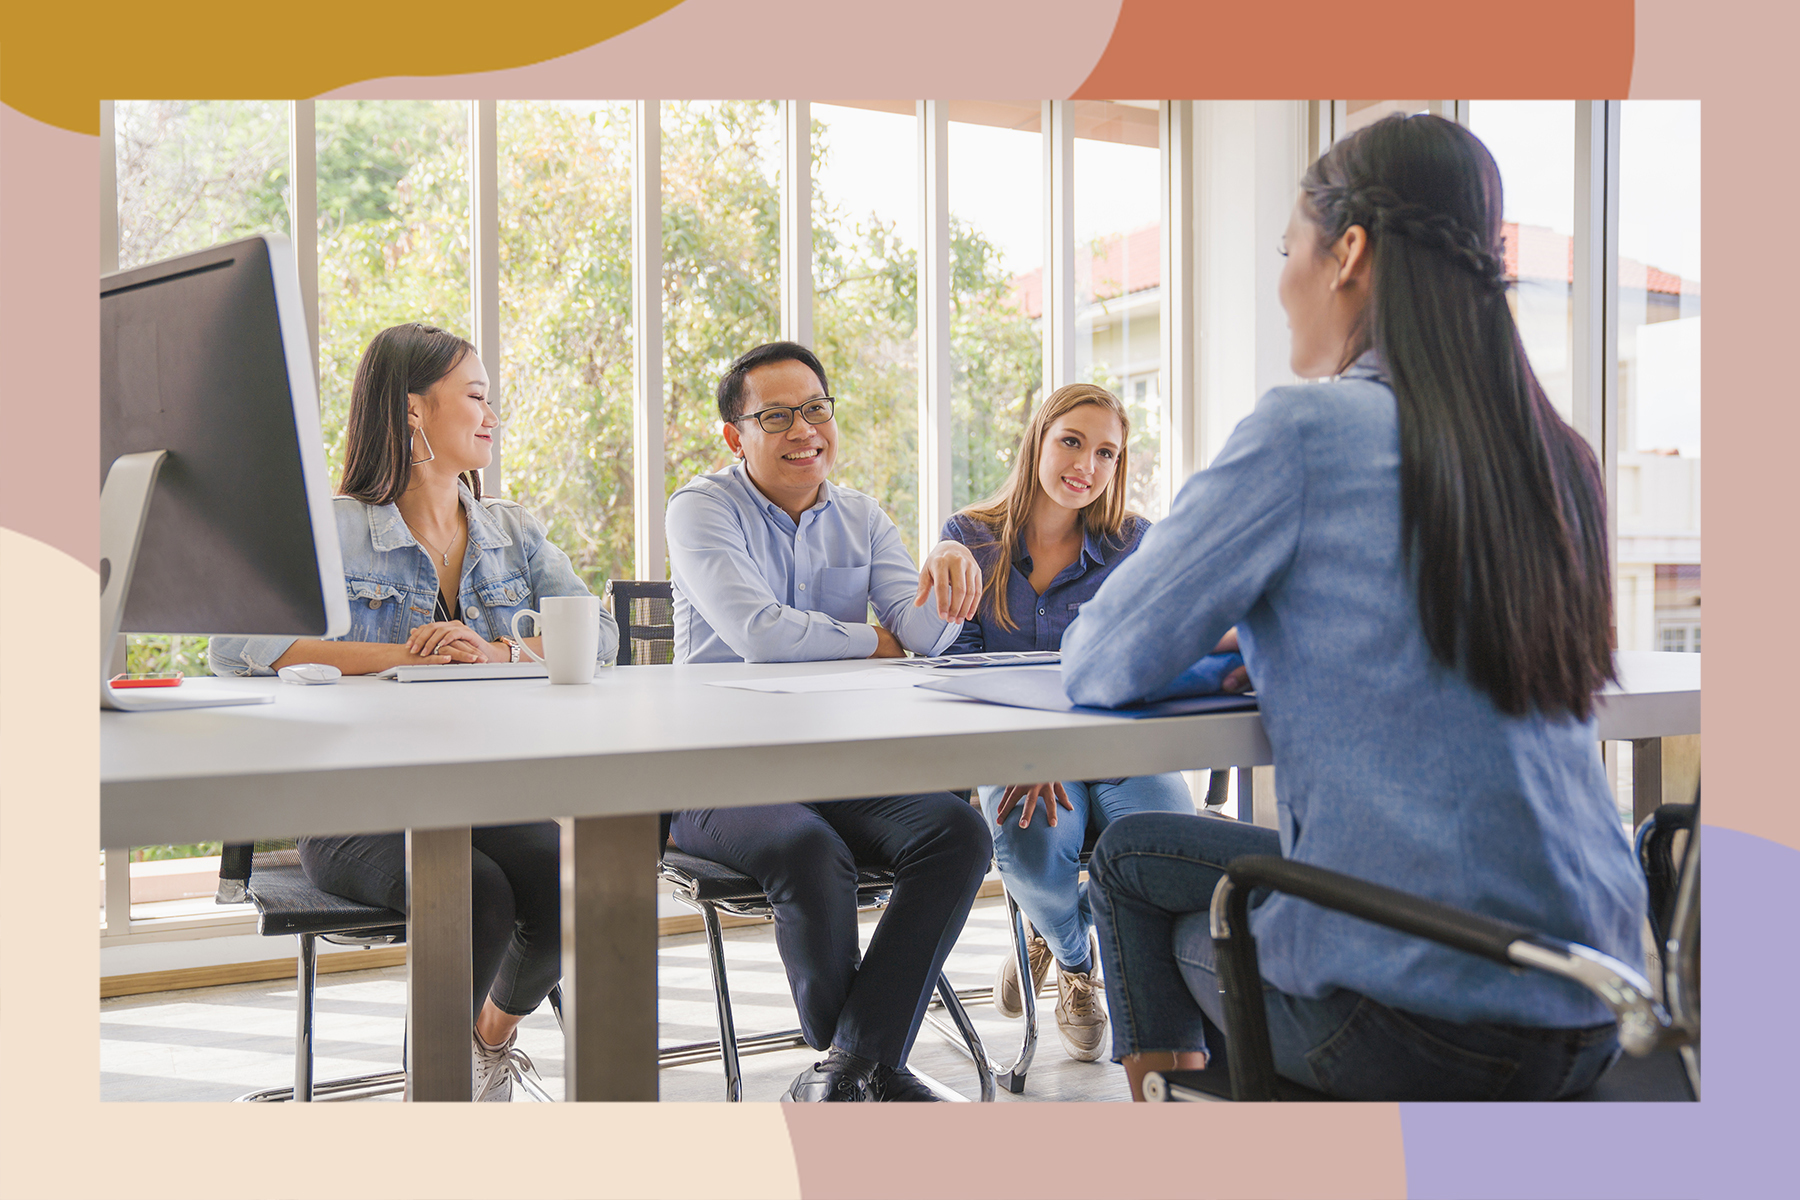 interview questions to prepare for